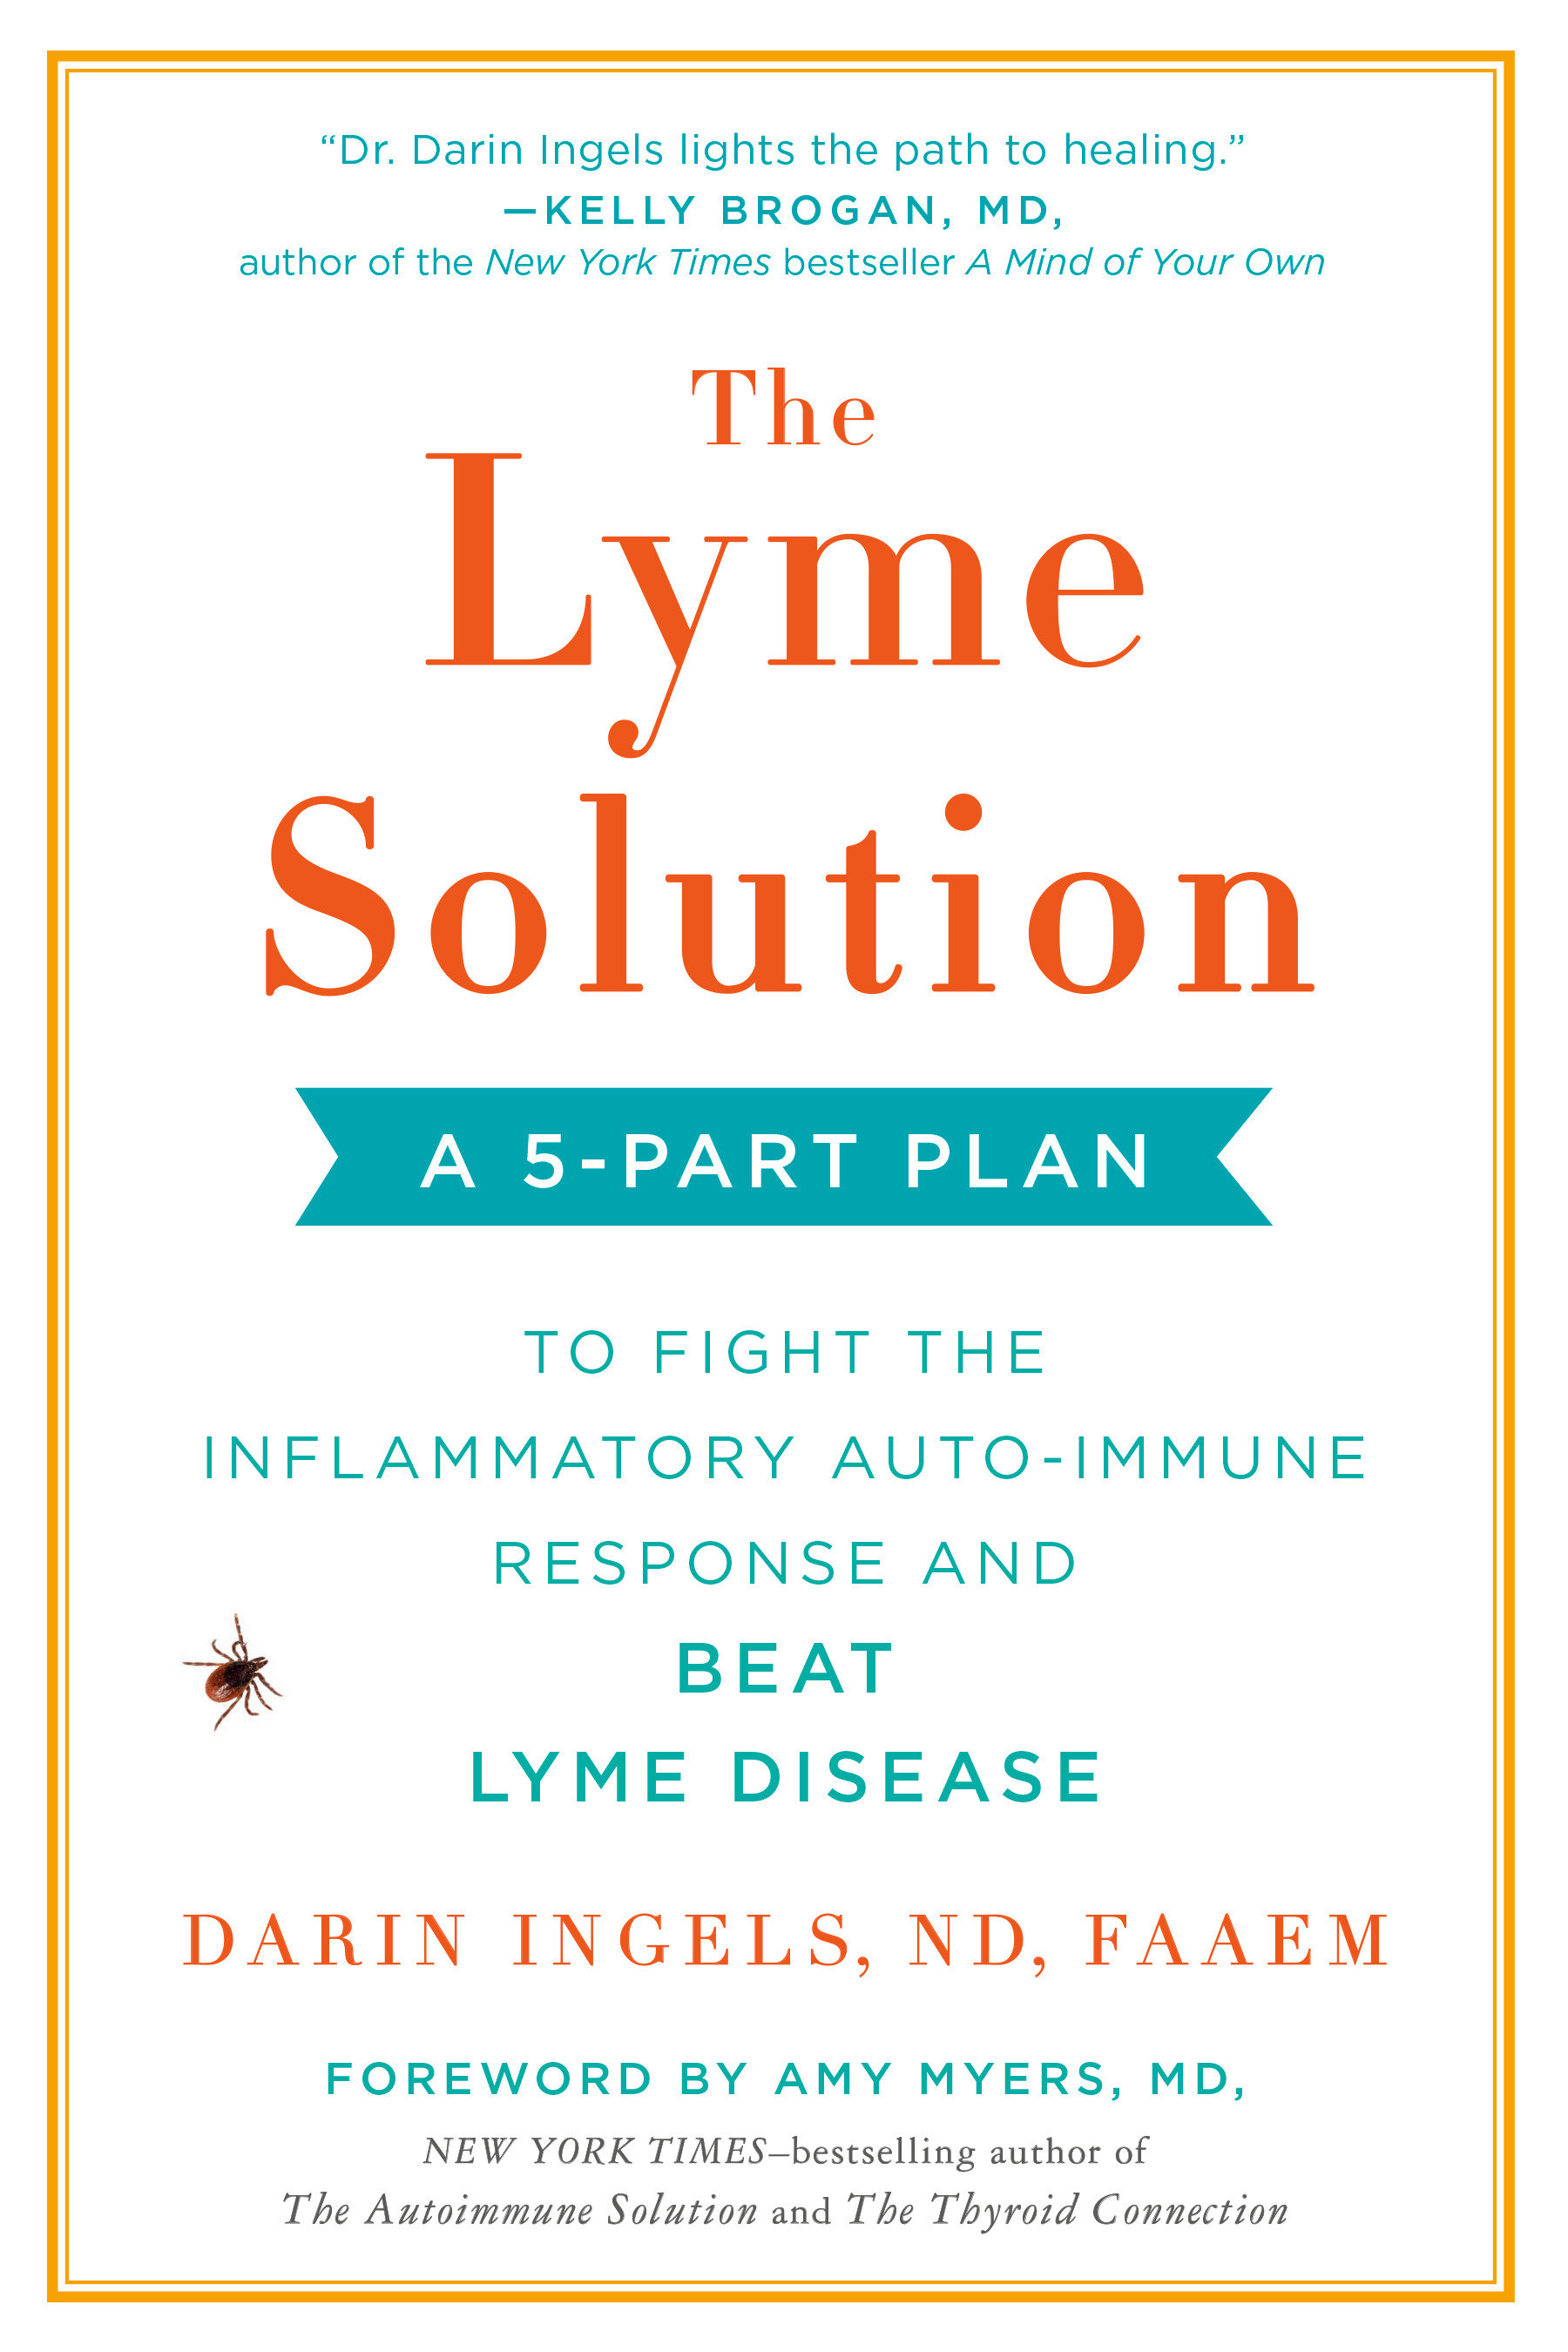 The Lyme solution a 5-part plan to fight the inflammatory auto-immune response and beat Lyme disease